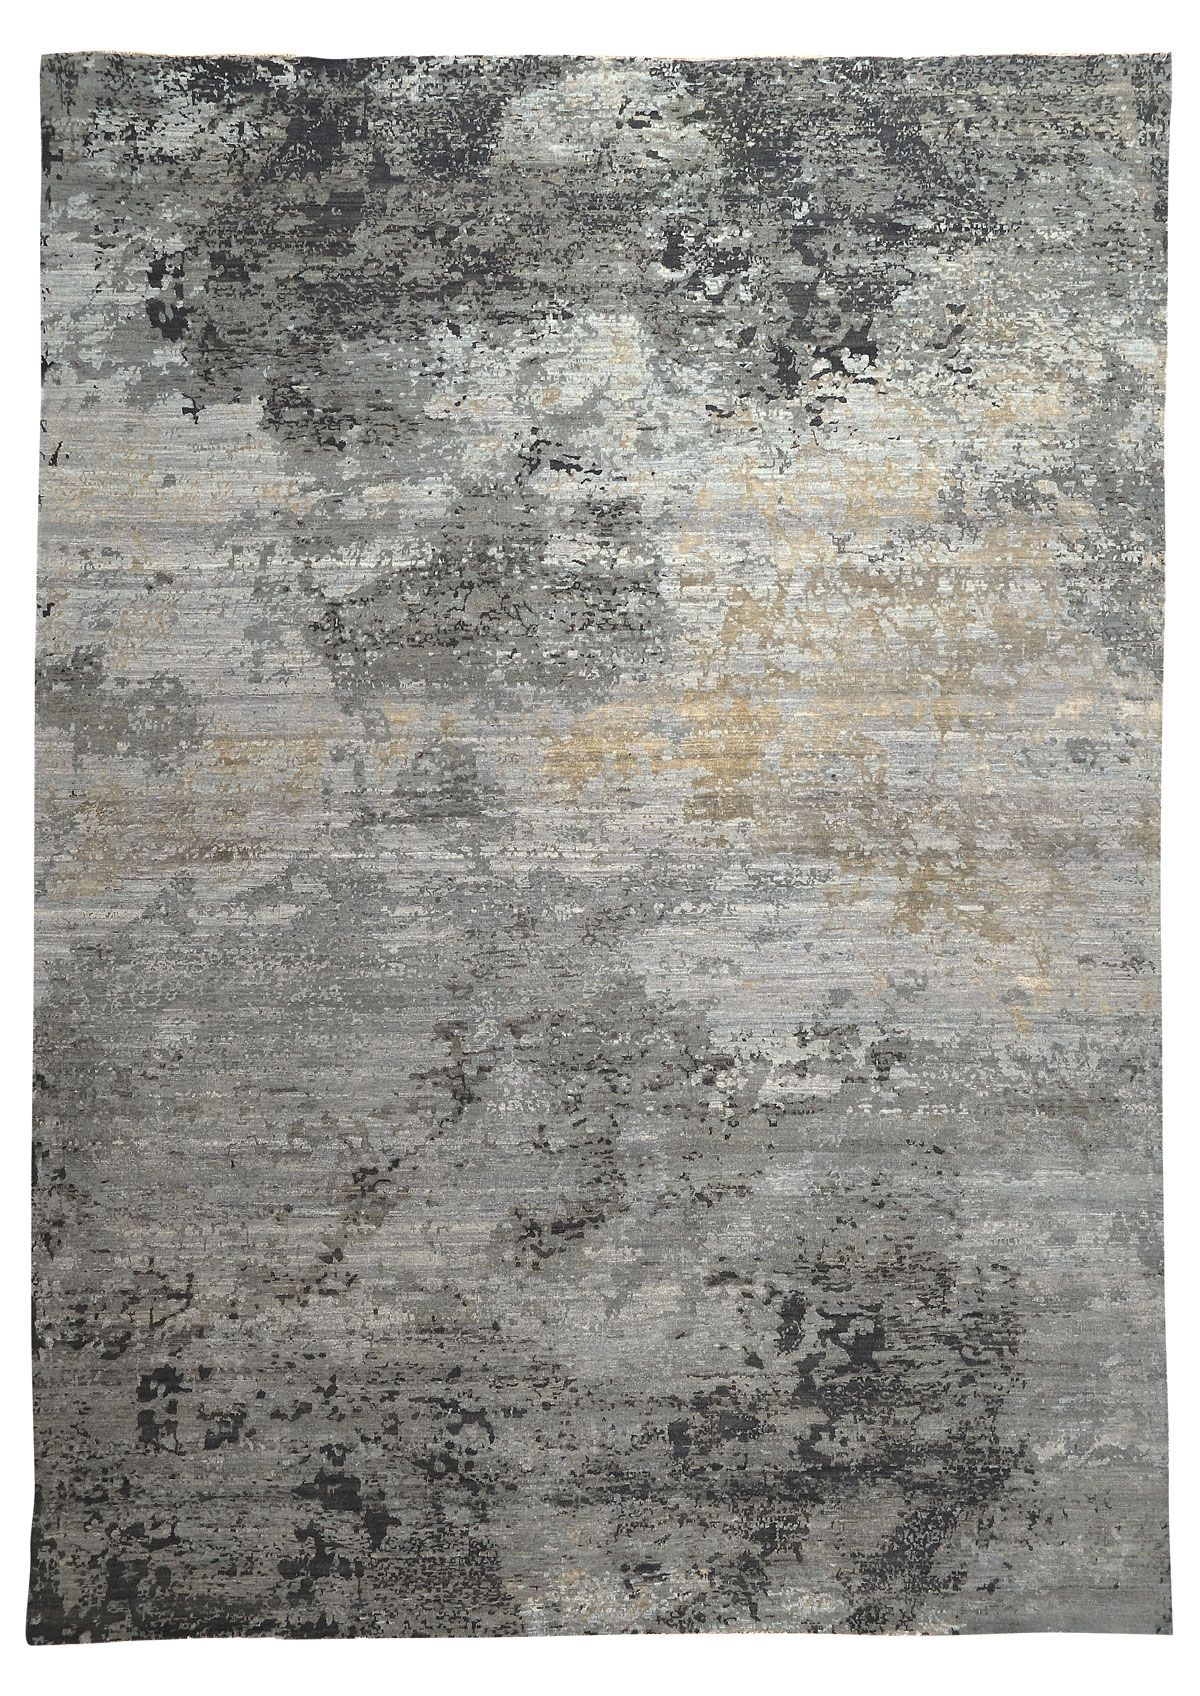 Luke irwin ravenna carpet pinterest ravenna for Modern carpet design texture